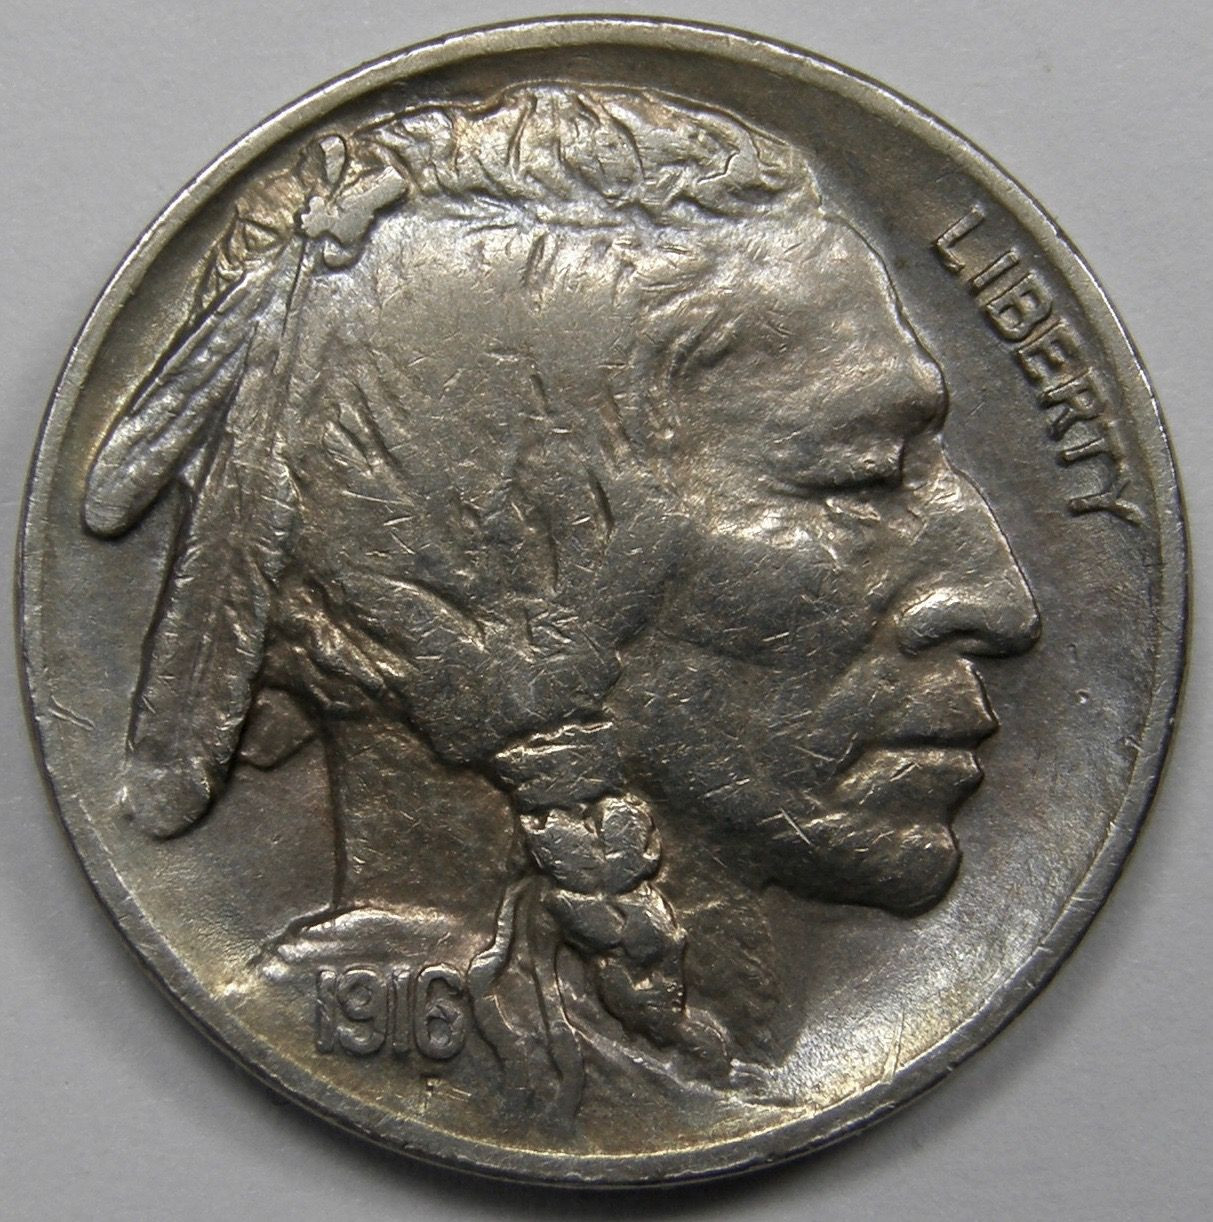 Buffalo Nickel Beautiful 1916 S Buffalo Nickel 1 for Sale now Online Item Of Beautiful 46 Models Buffalo Nickel